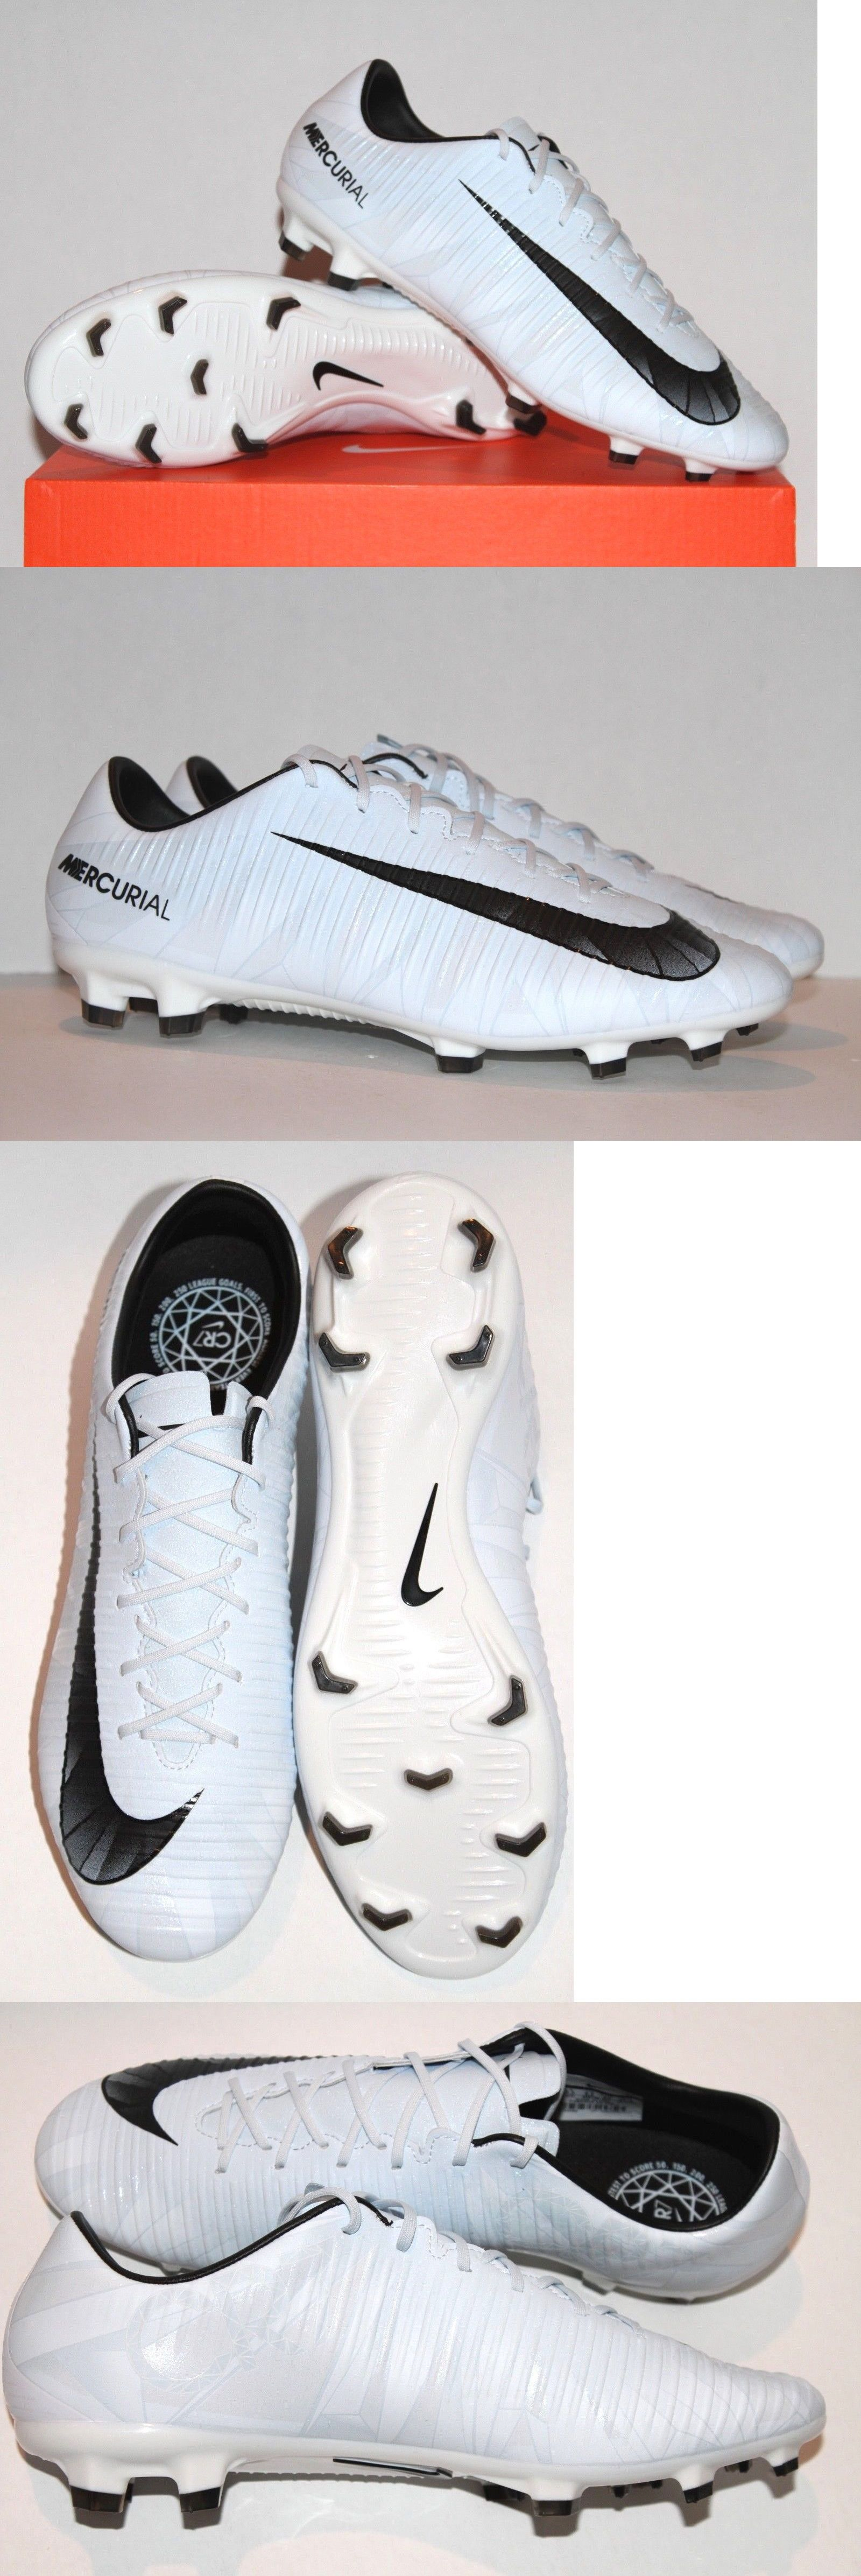 best website 7de51 ebcc5 Clothing Shoes and Accessories 159178  Nike Mercurial Veloce Iii Cr7 Fg  Soccer Cleats Mens 9.5